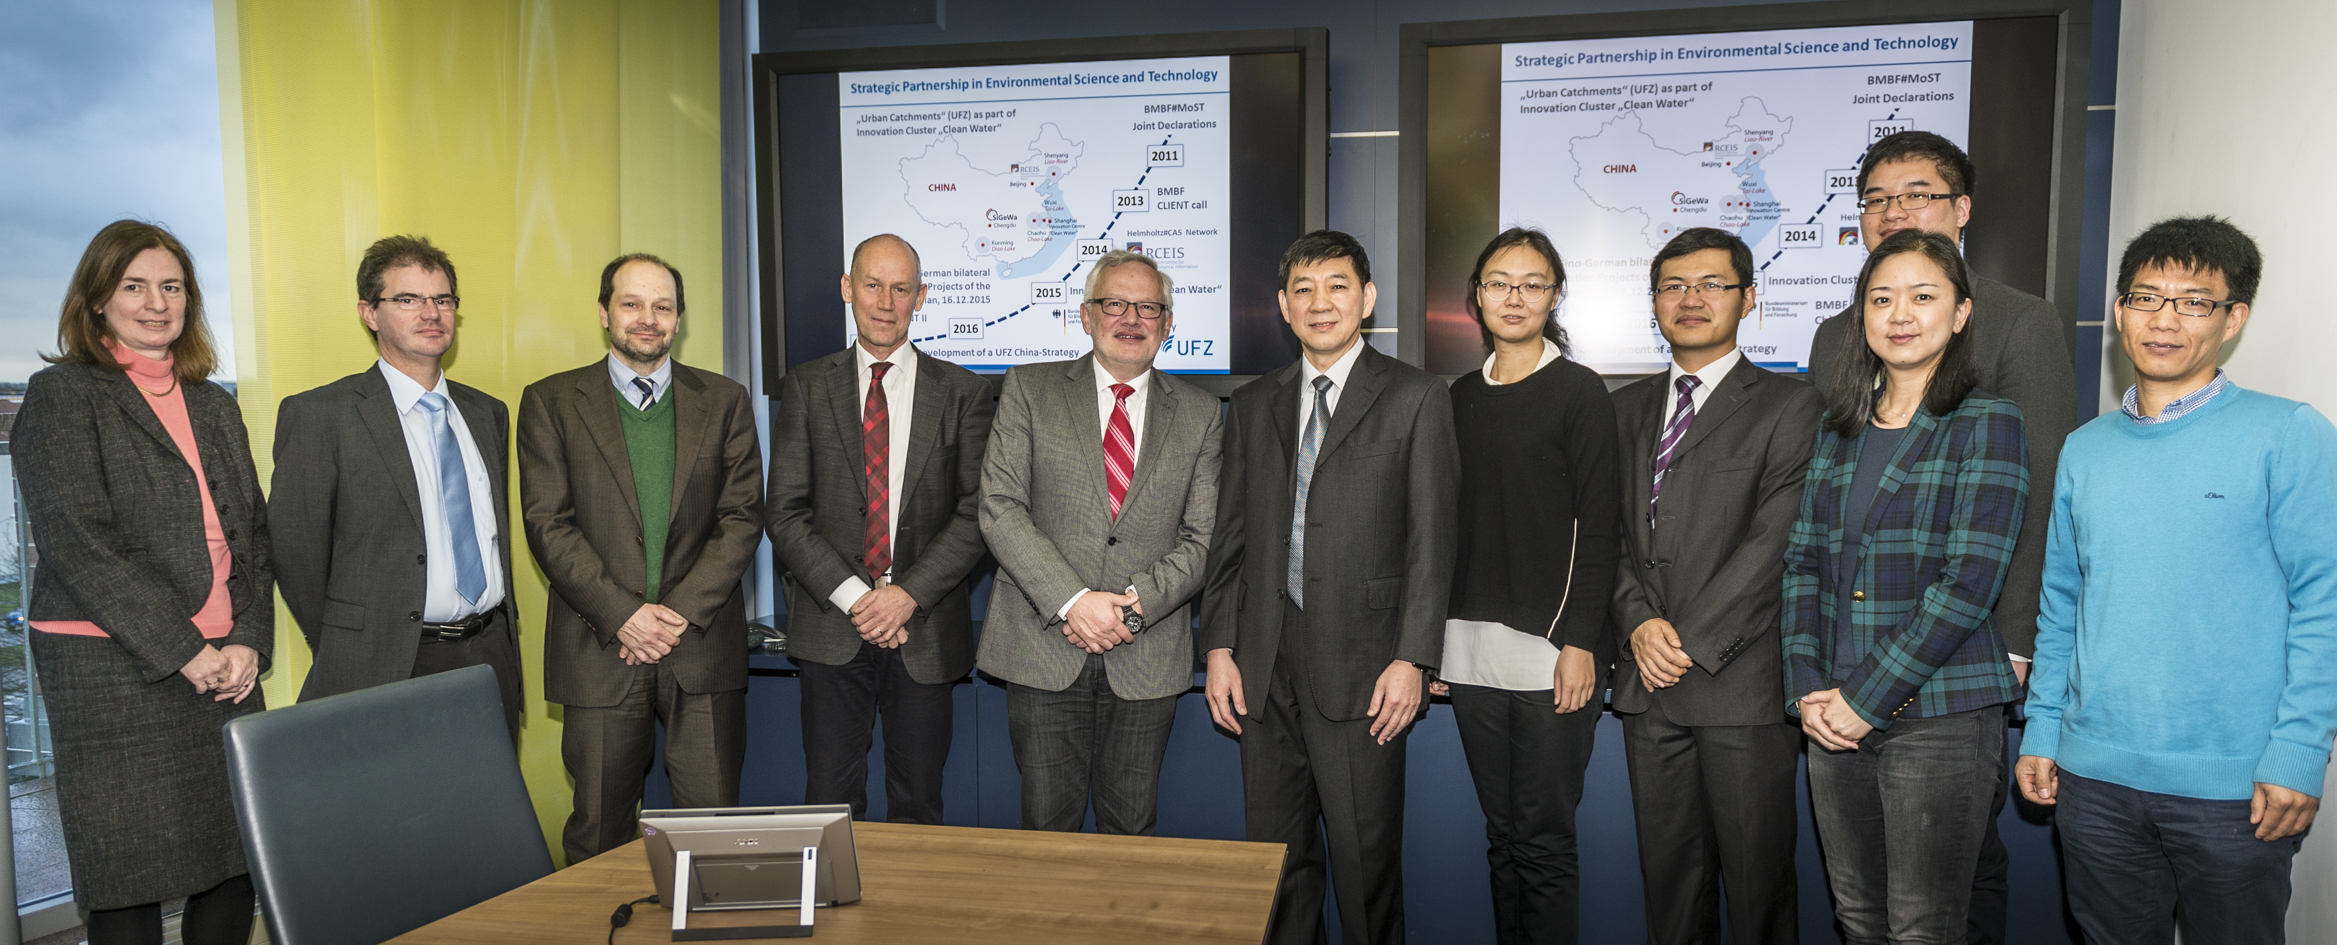 Delegation visit of the Ministry of Science and Technology (Mr. YANG, Deputy General Director) to discuss strategic cooperation between China and Germany in environmental science and technology, Leipzig, 13.01.2016